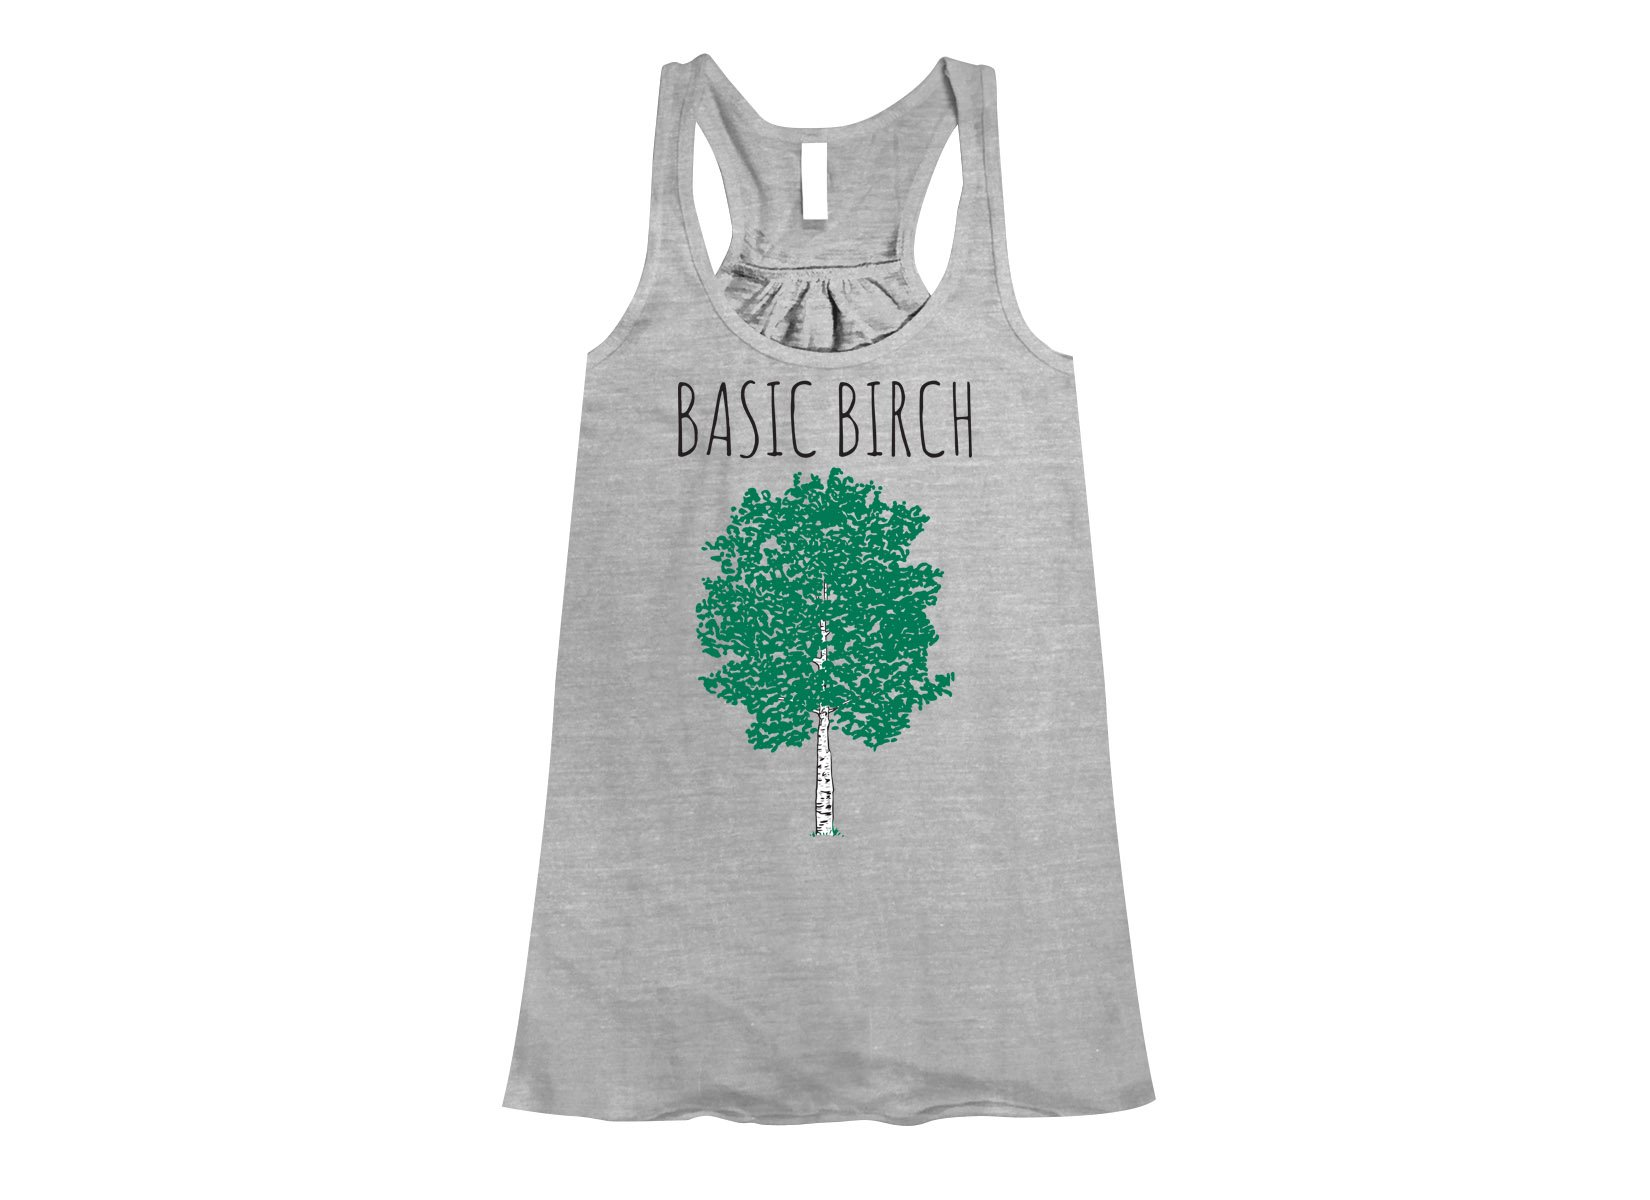 Basic Birch on Womens Tanks T-Shirt